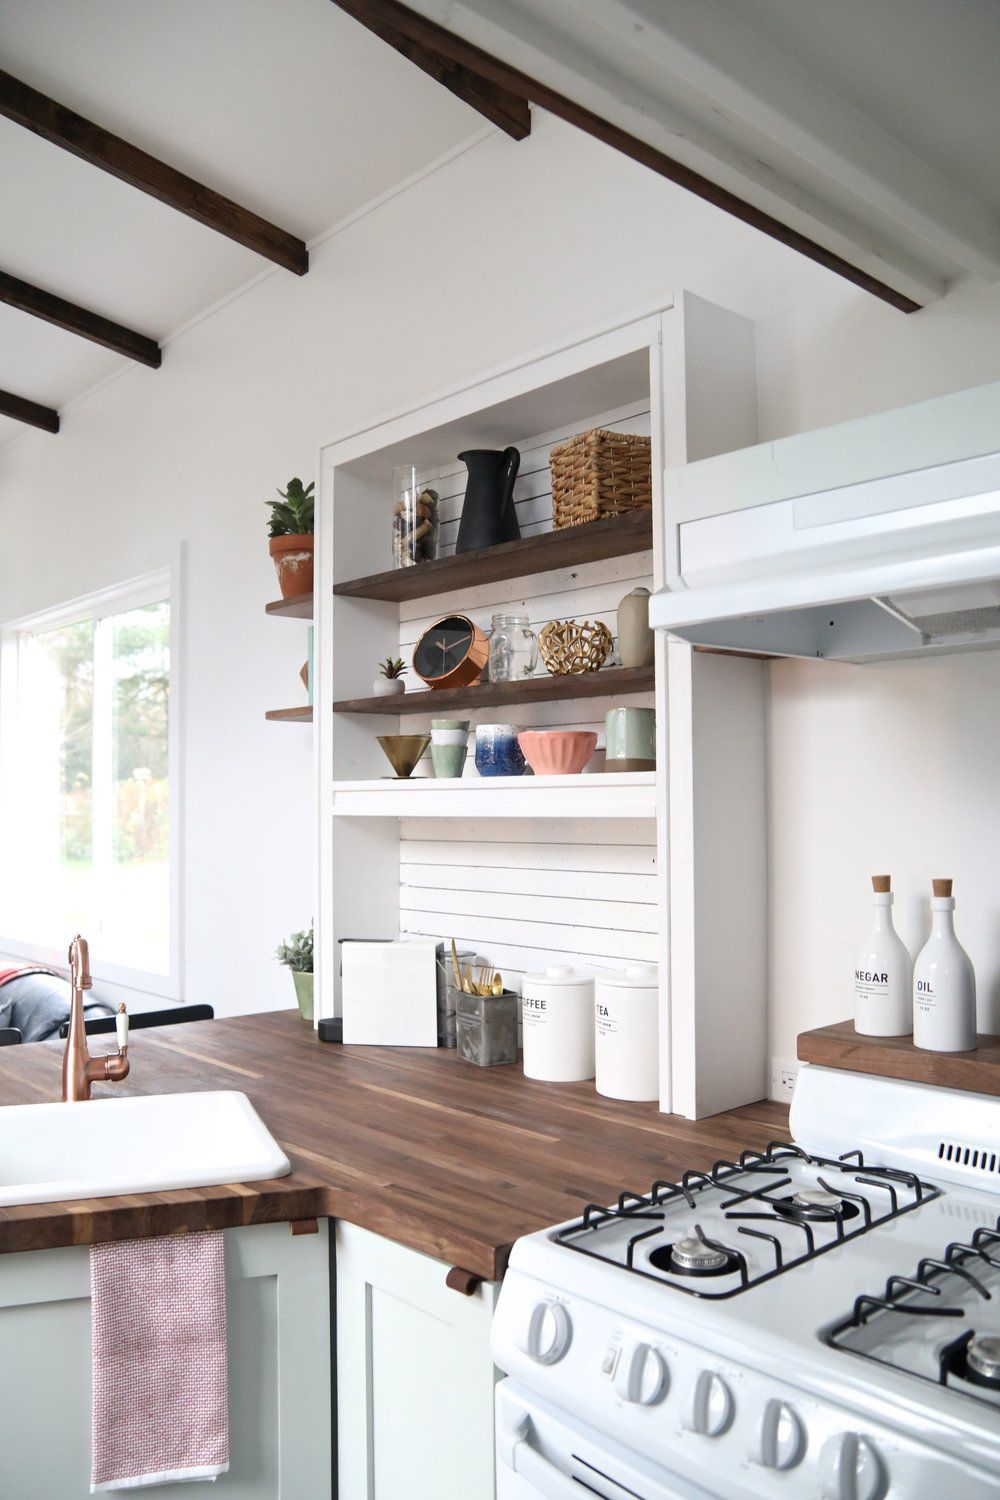 Pacific Getaway by Handcrafted Movement | Bowl sink, Refrigerator ...